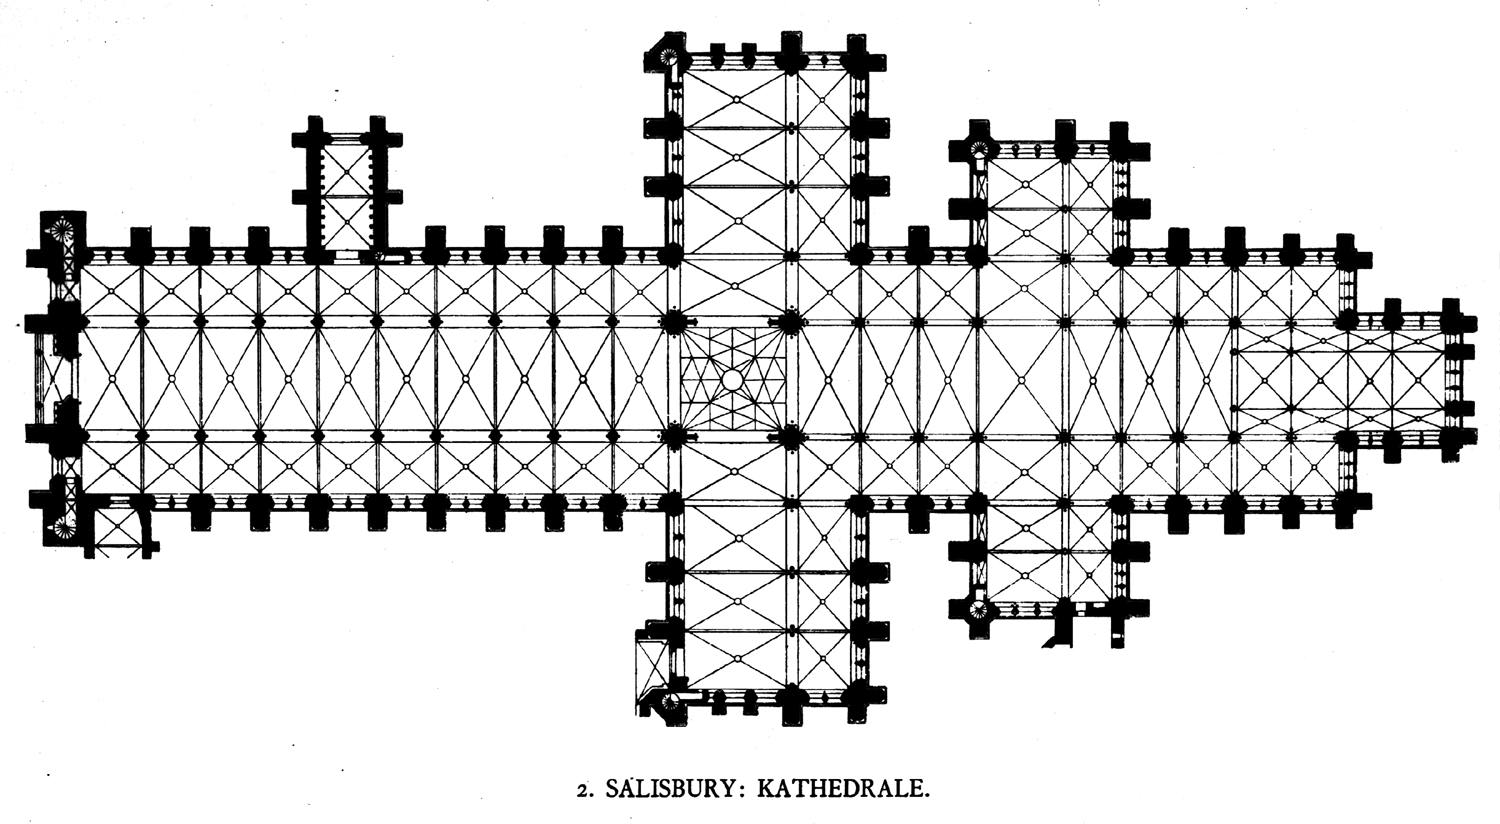 File:Salisbury cathedral plan.jpg - Wikimedia Commons